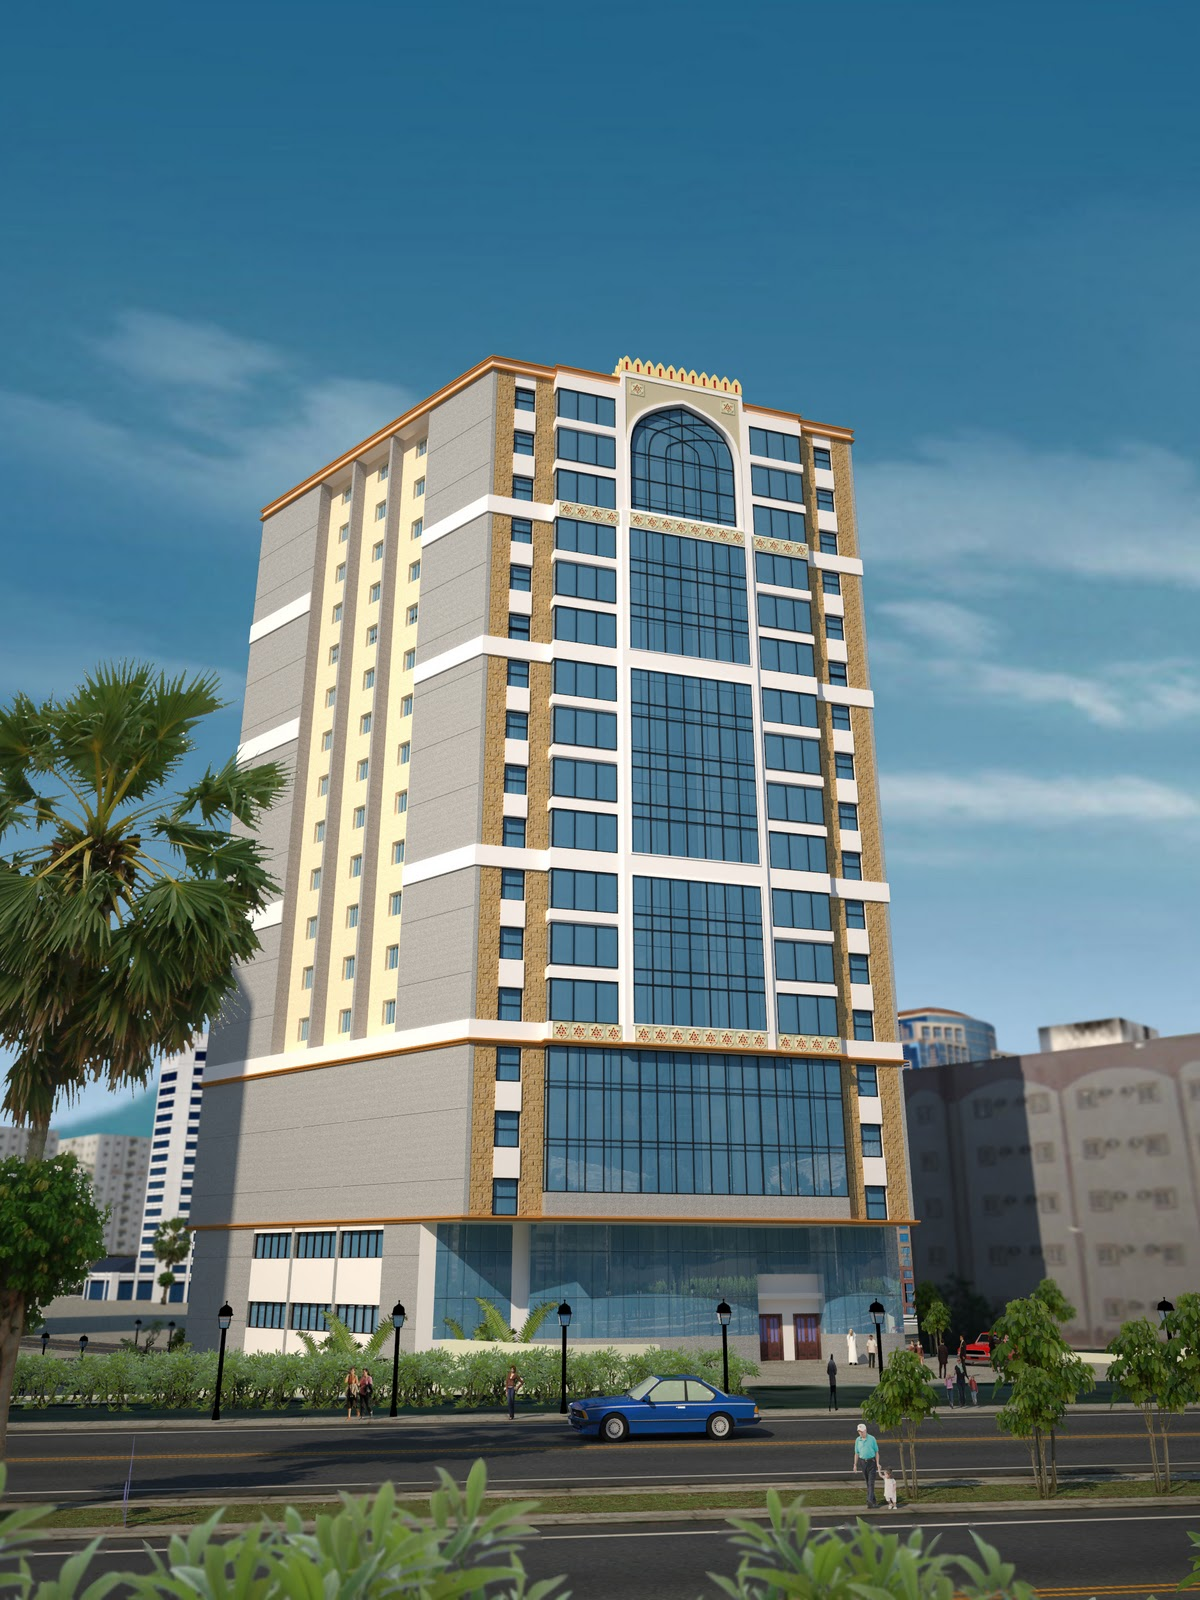 D Front Elevation Of Commercial Building : Casatreschic interior d front elevation of plaza tower